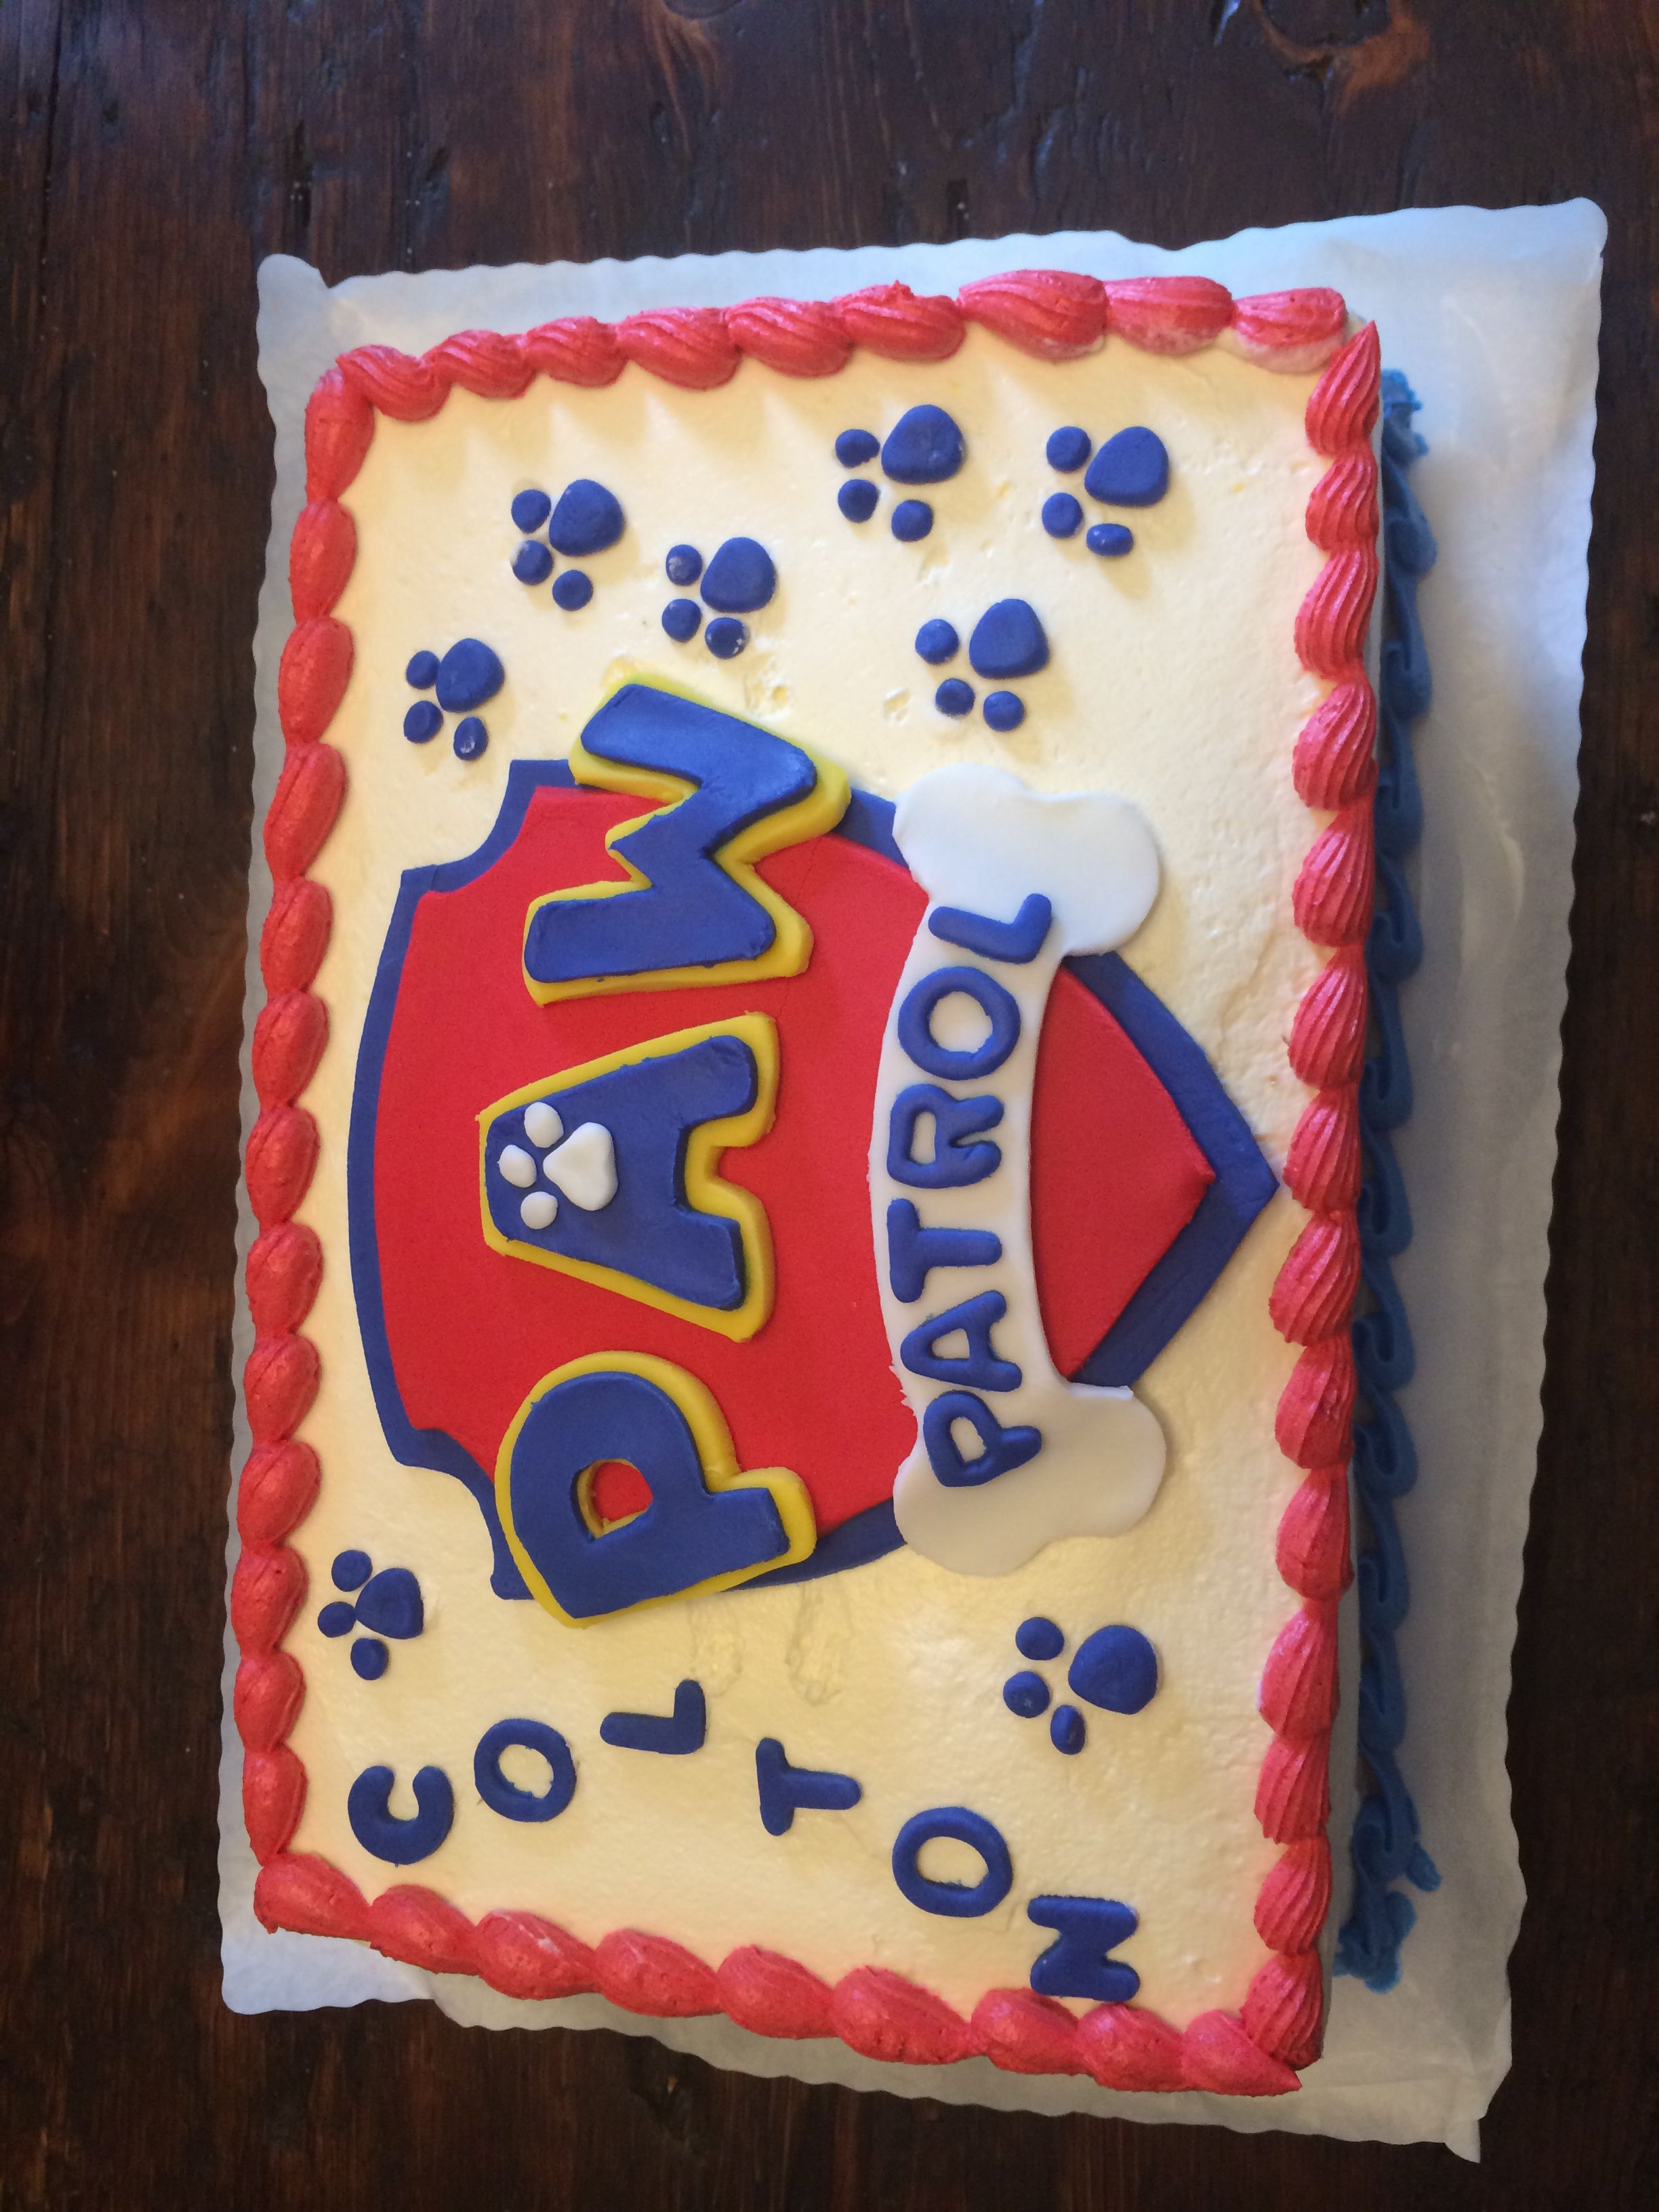 Paw Patrol Cake I Just Ordered A Plain Cake From My Fave Bakery